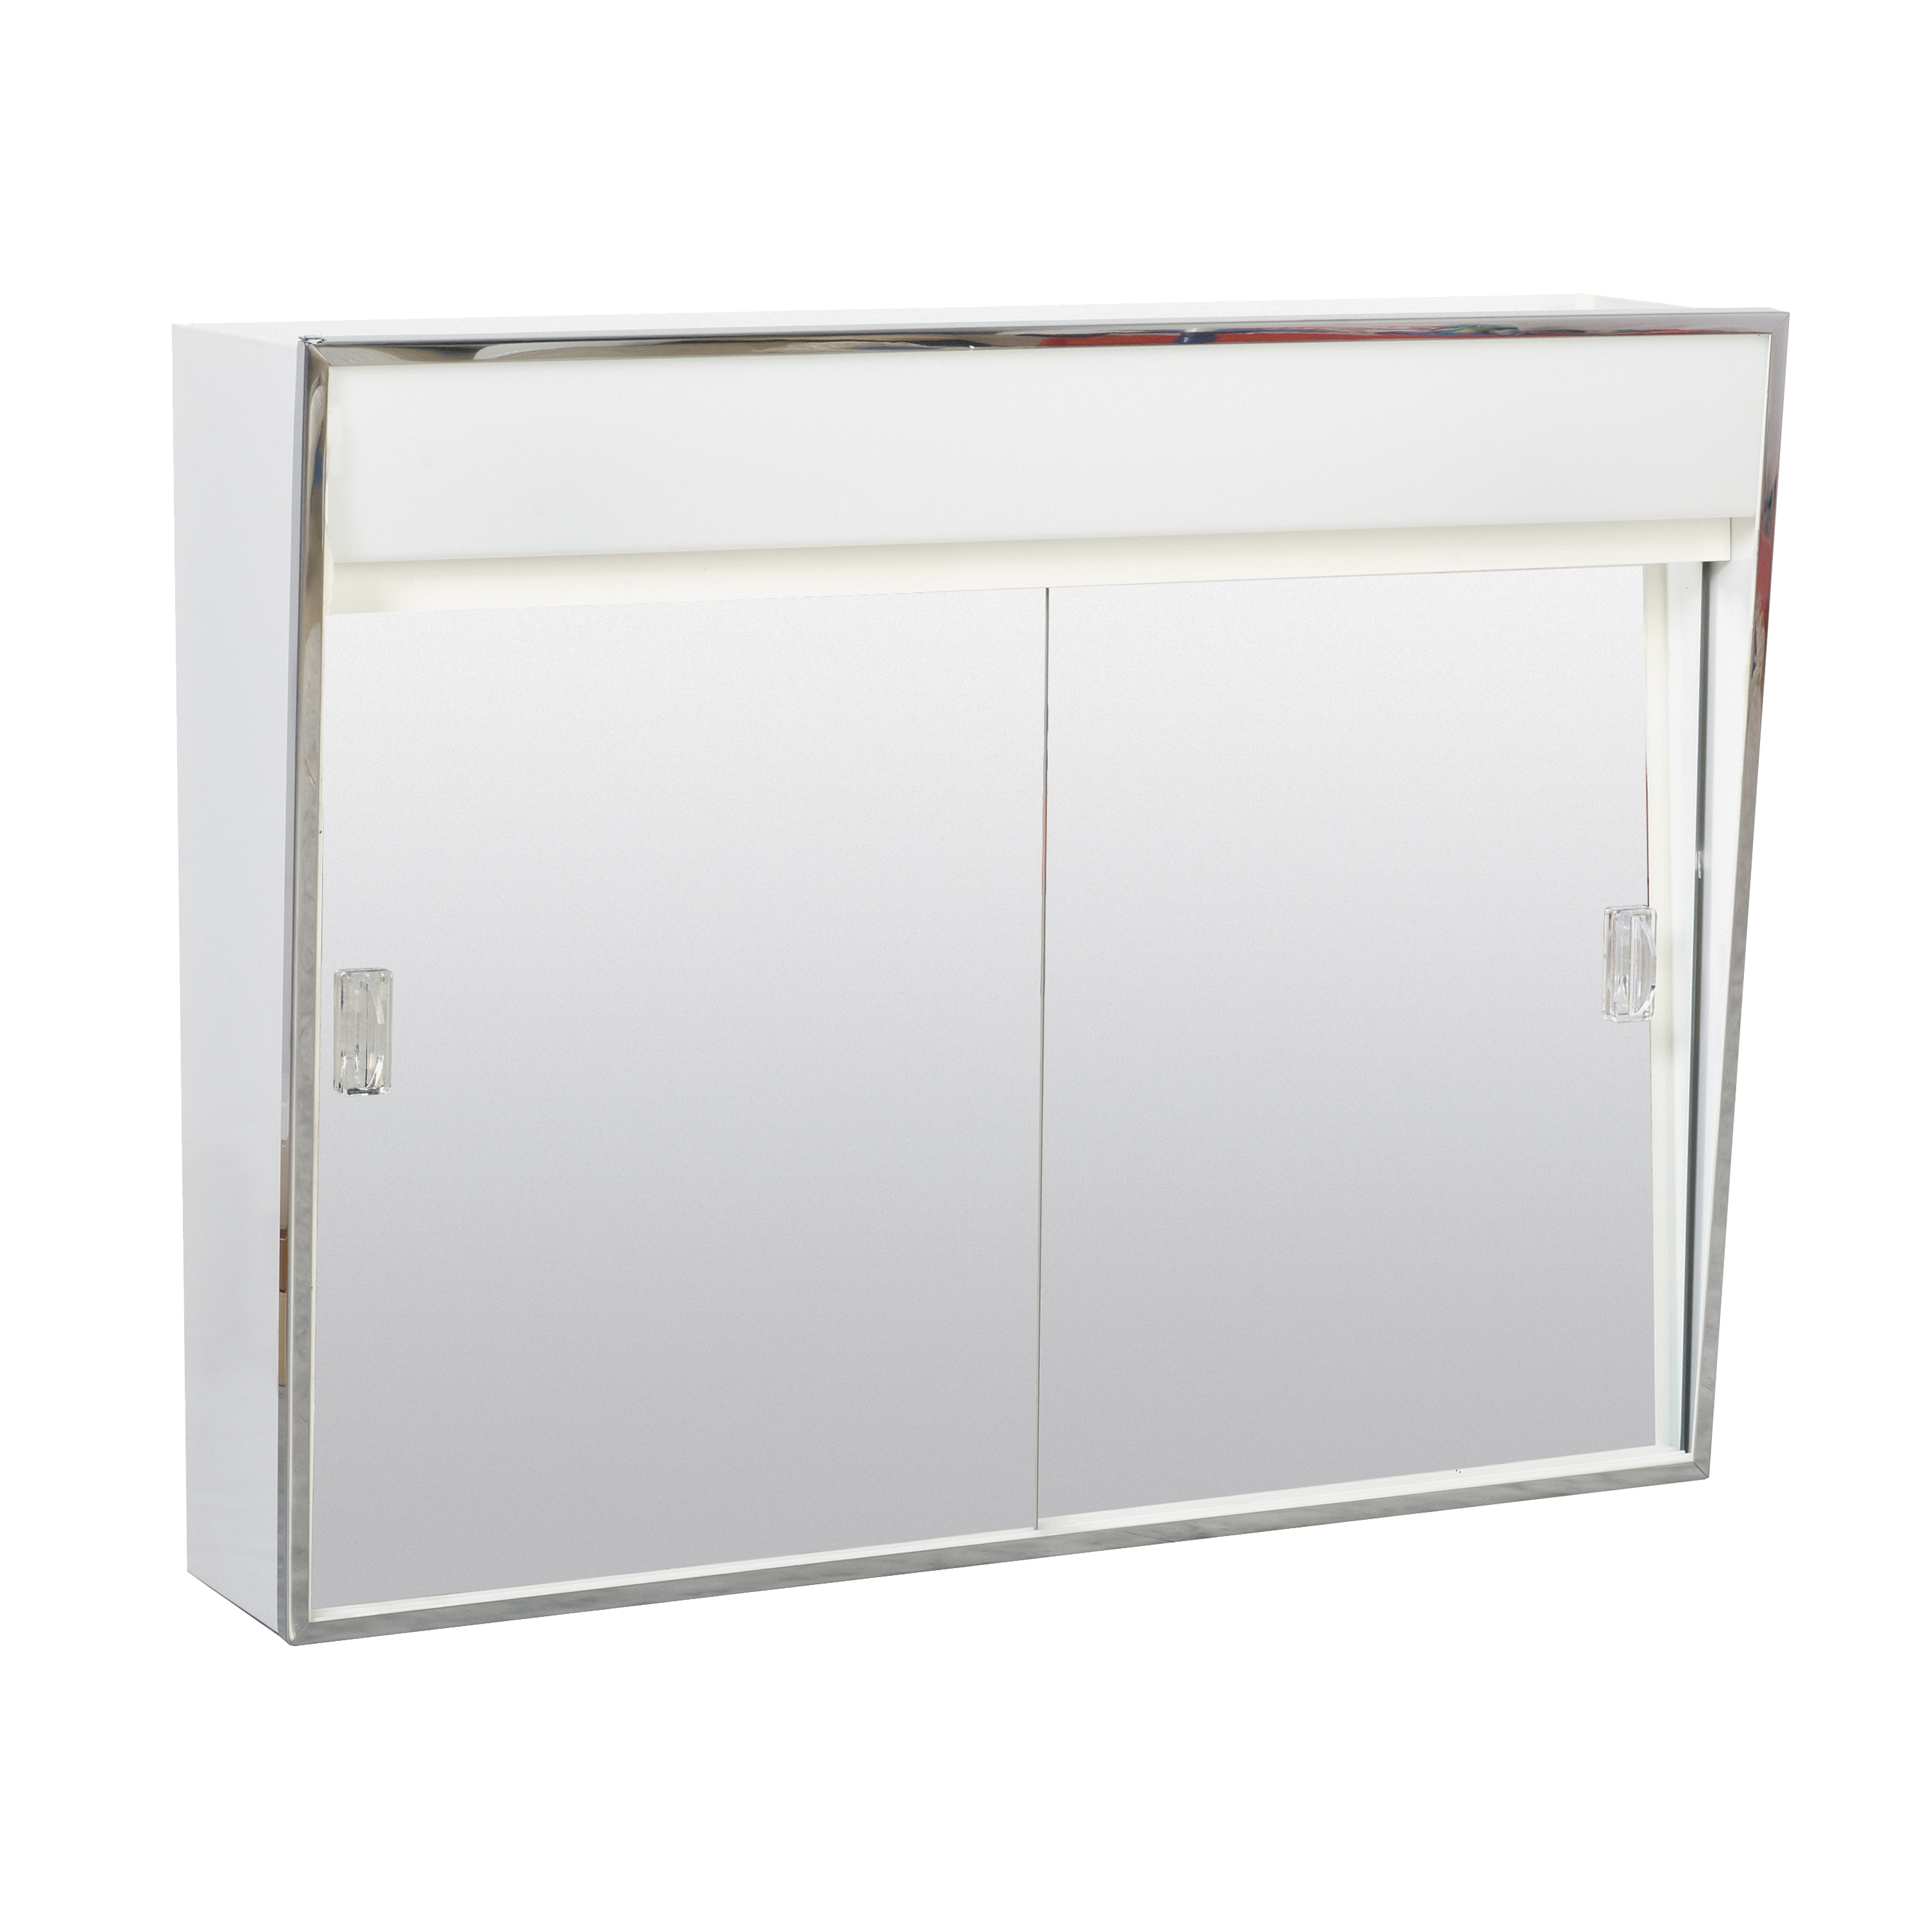 Picture of Zenith 701L Medicine Cabinet with Incandescent Light, 23-3/8 in OAW, 5-1/2 in OAD, 18-1/8 in OAH, Steel, White